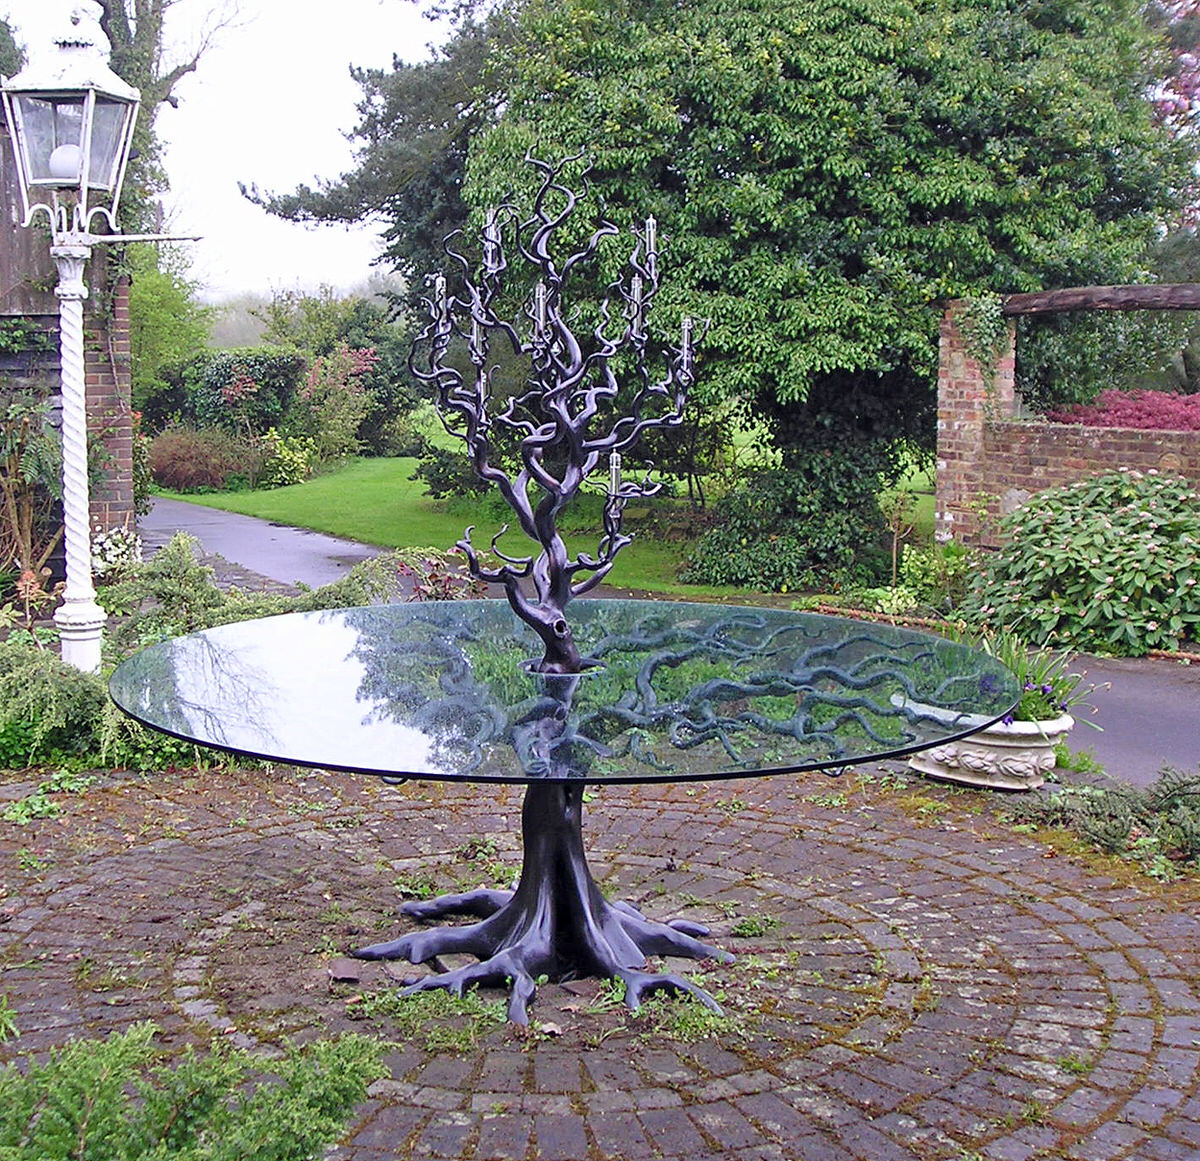 Sidney S Oak Table Mark Reed Sculpture